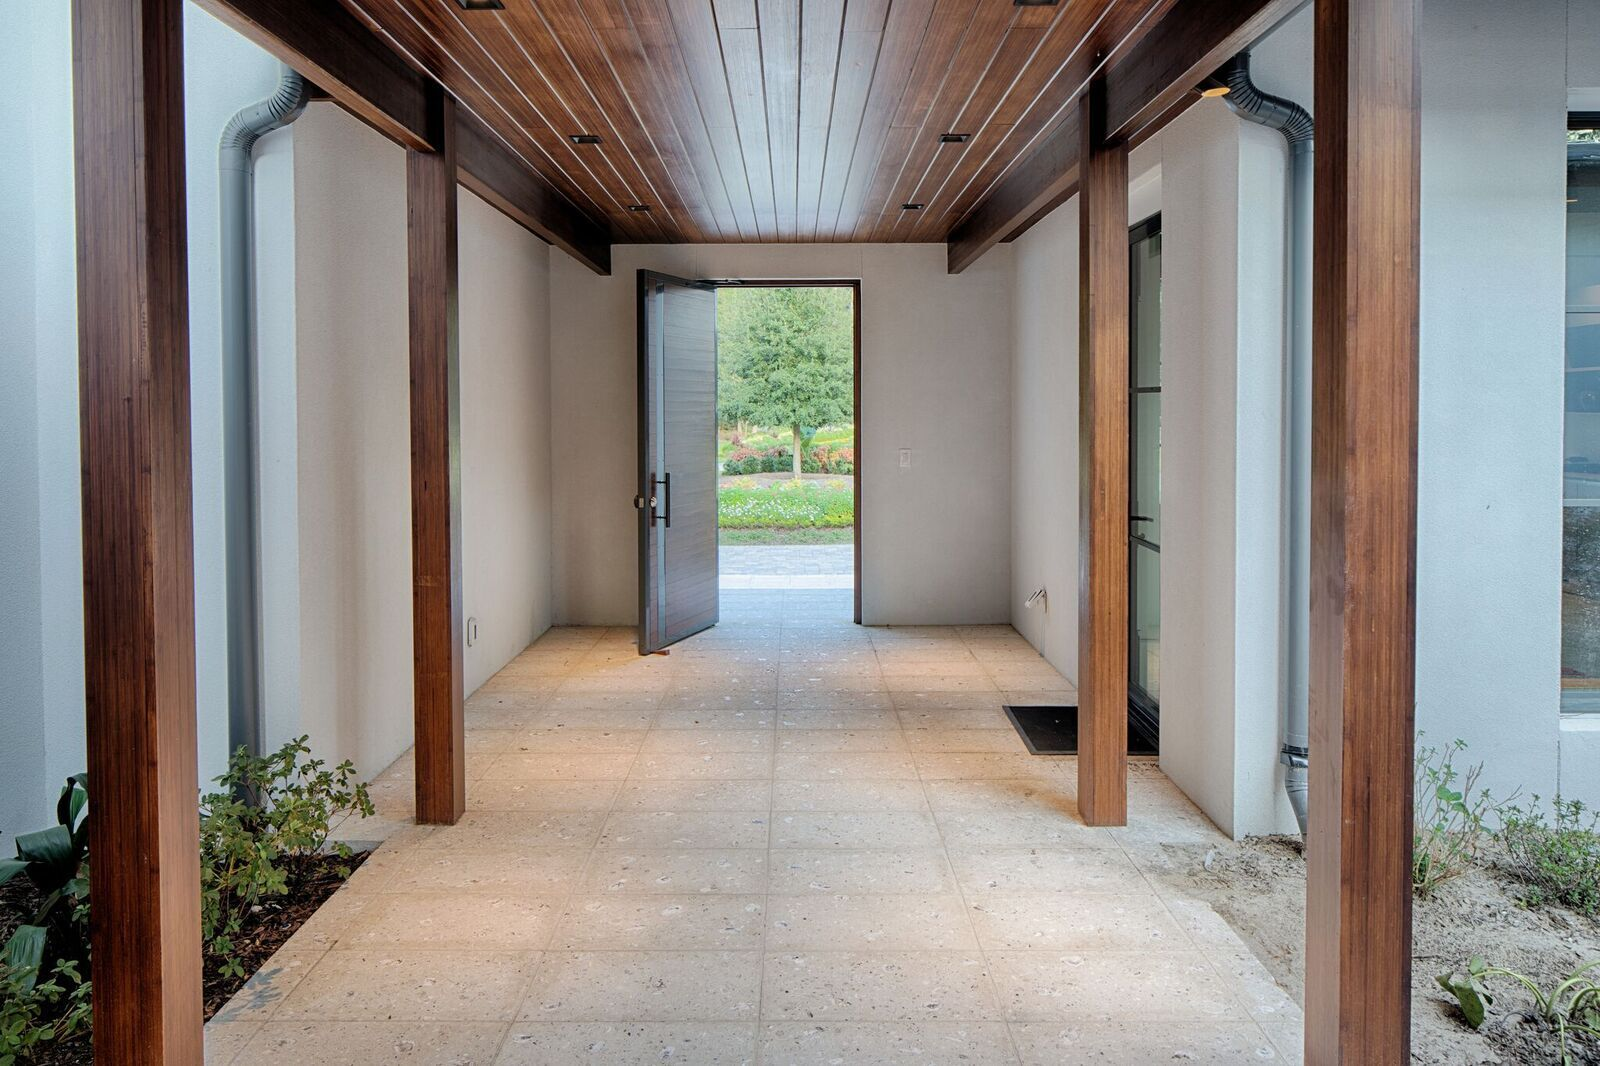 Seen here is the combination of Lamboo® Vue™ - Exterior Entry Door, Lamboo® Rainscreen™ - Soffit, & Lamboo® Structure™ - Posts & Beams on the exterior entryway of the home.